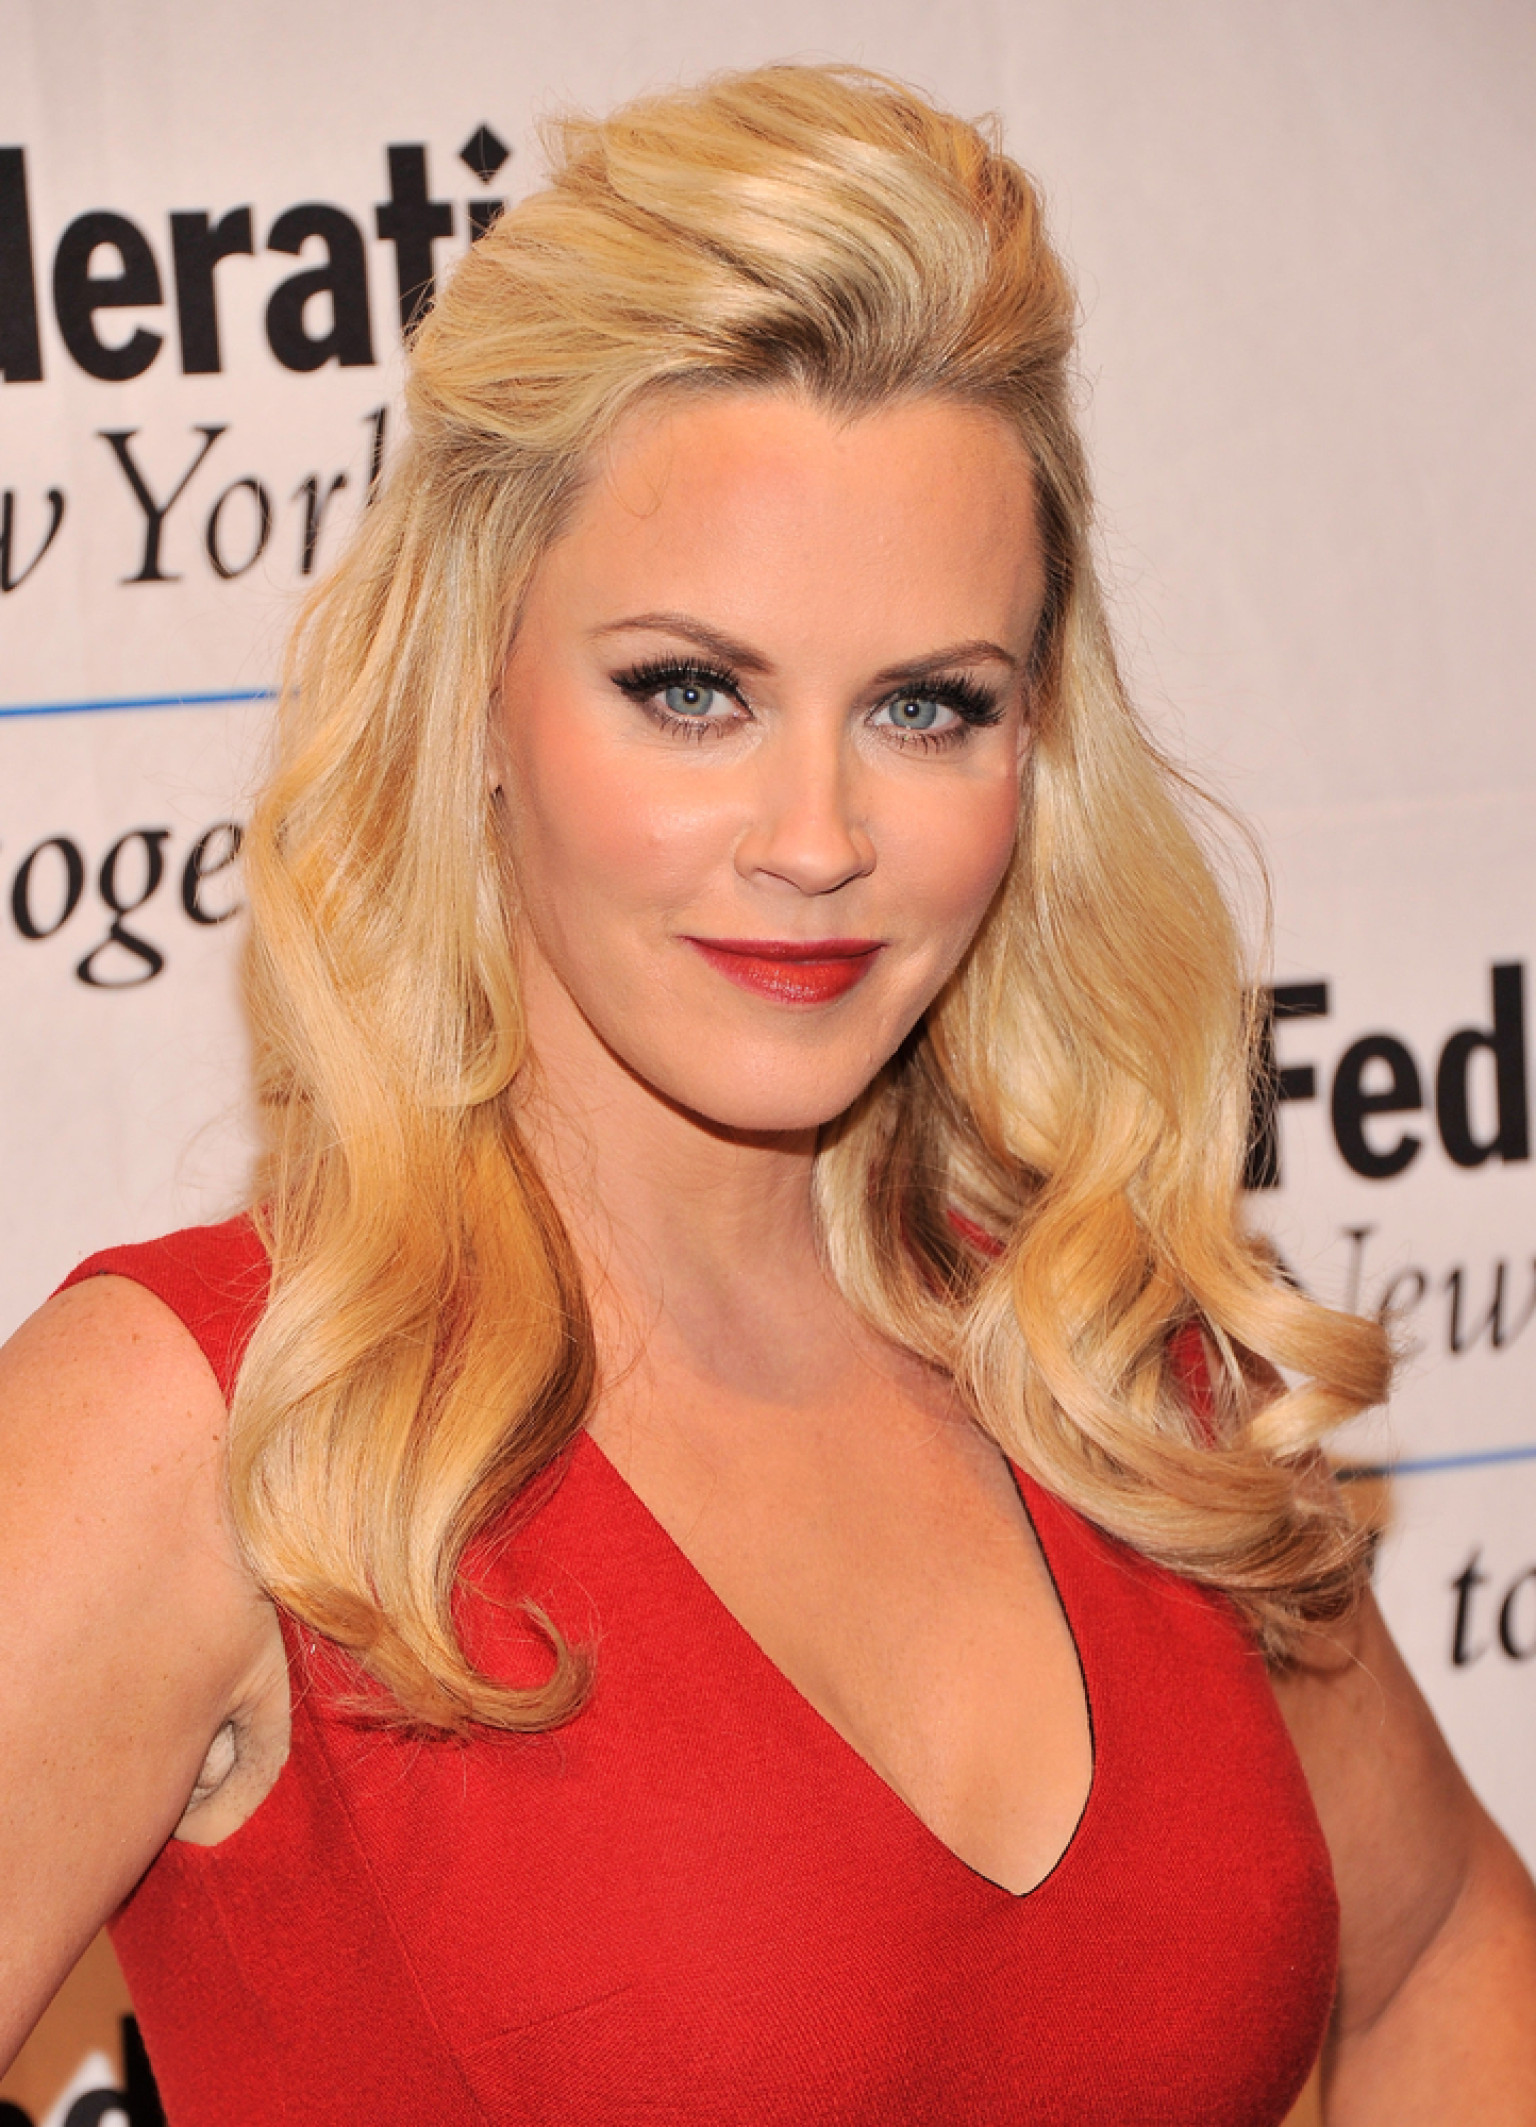 FILE: Jenny McCarthy To Co-Host The View